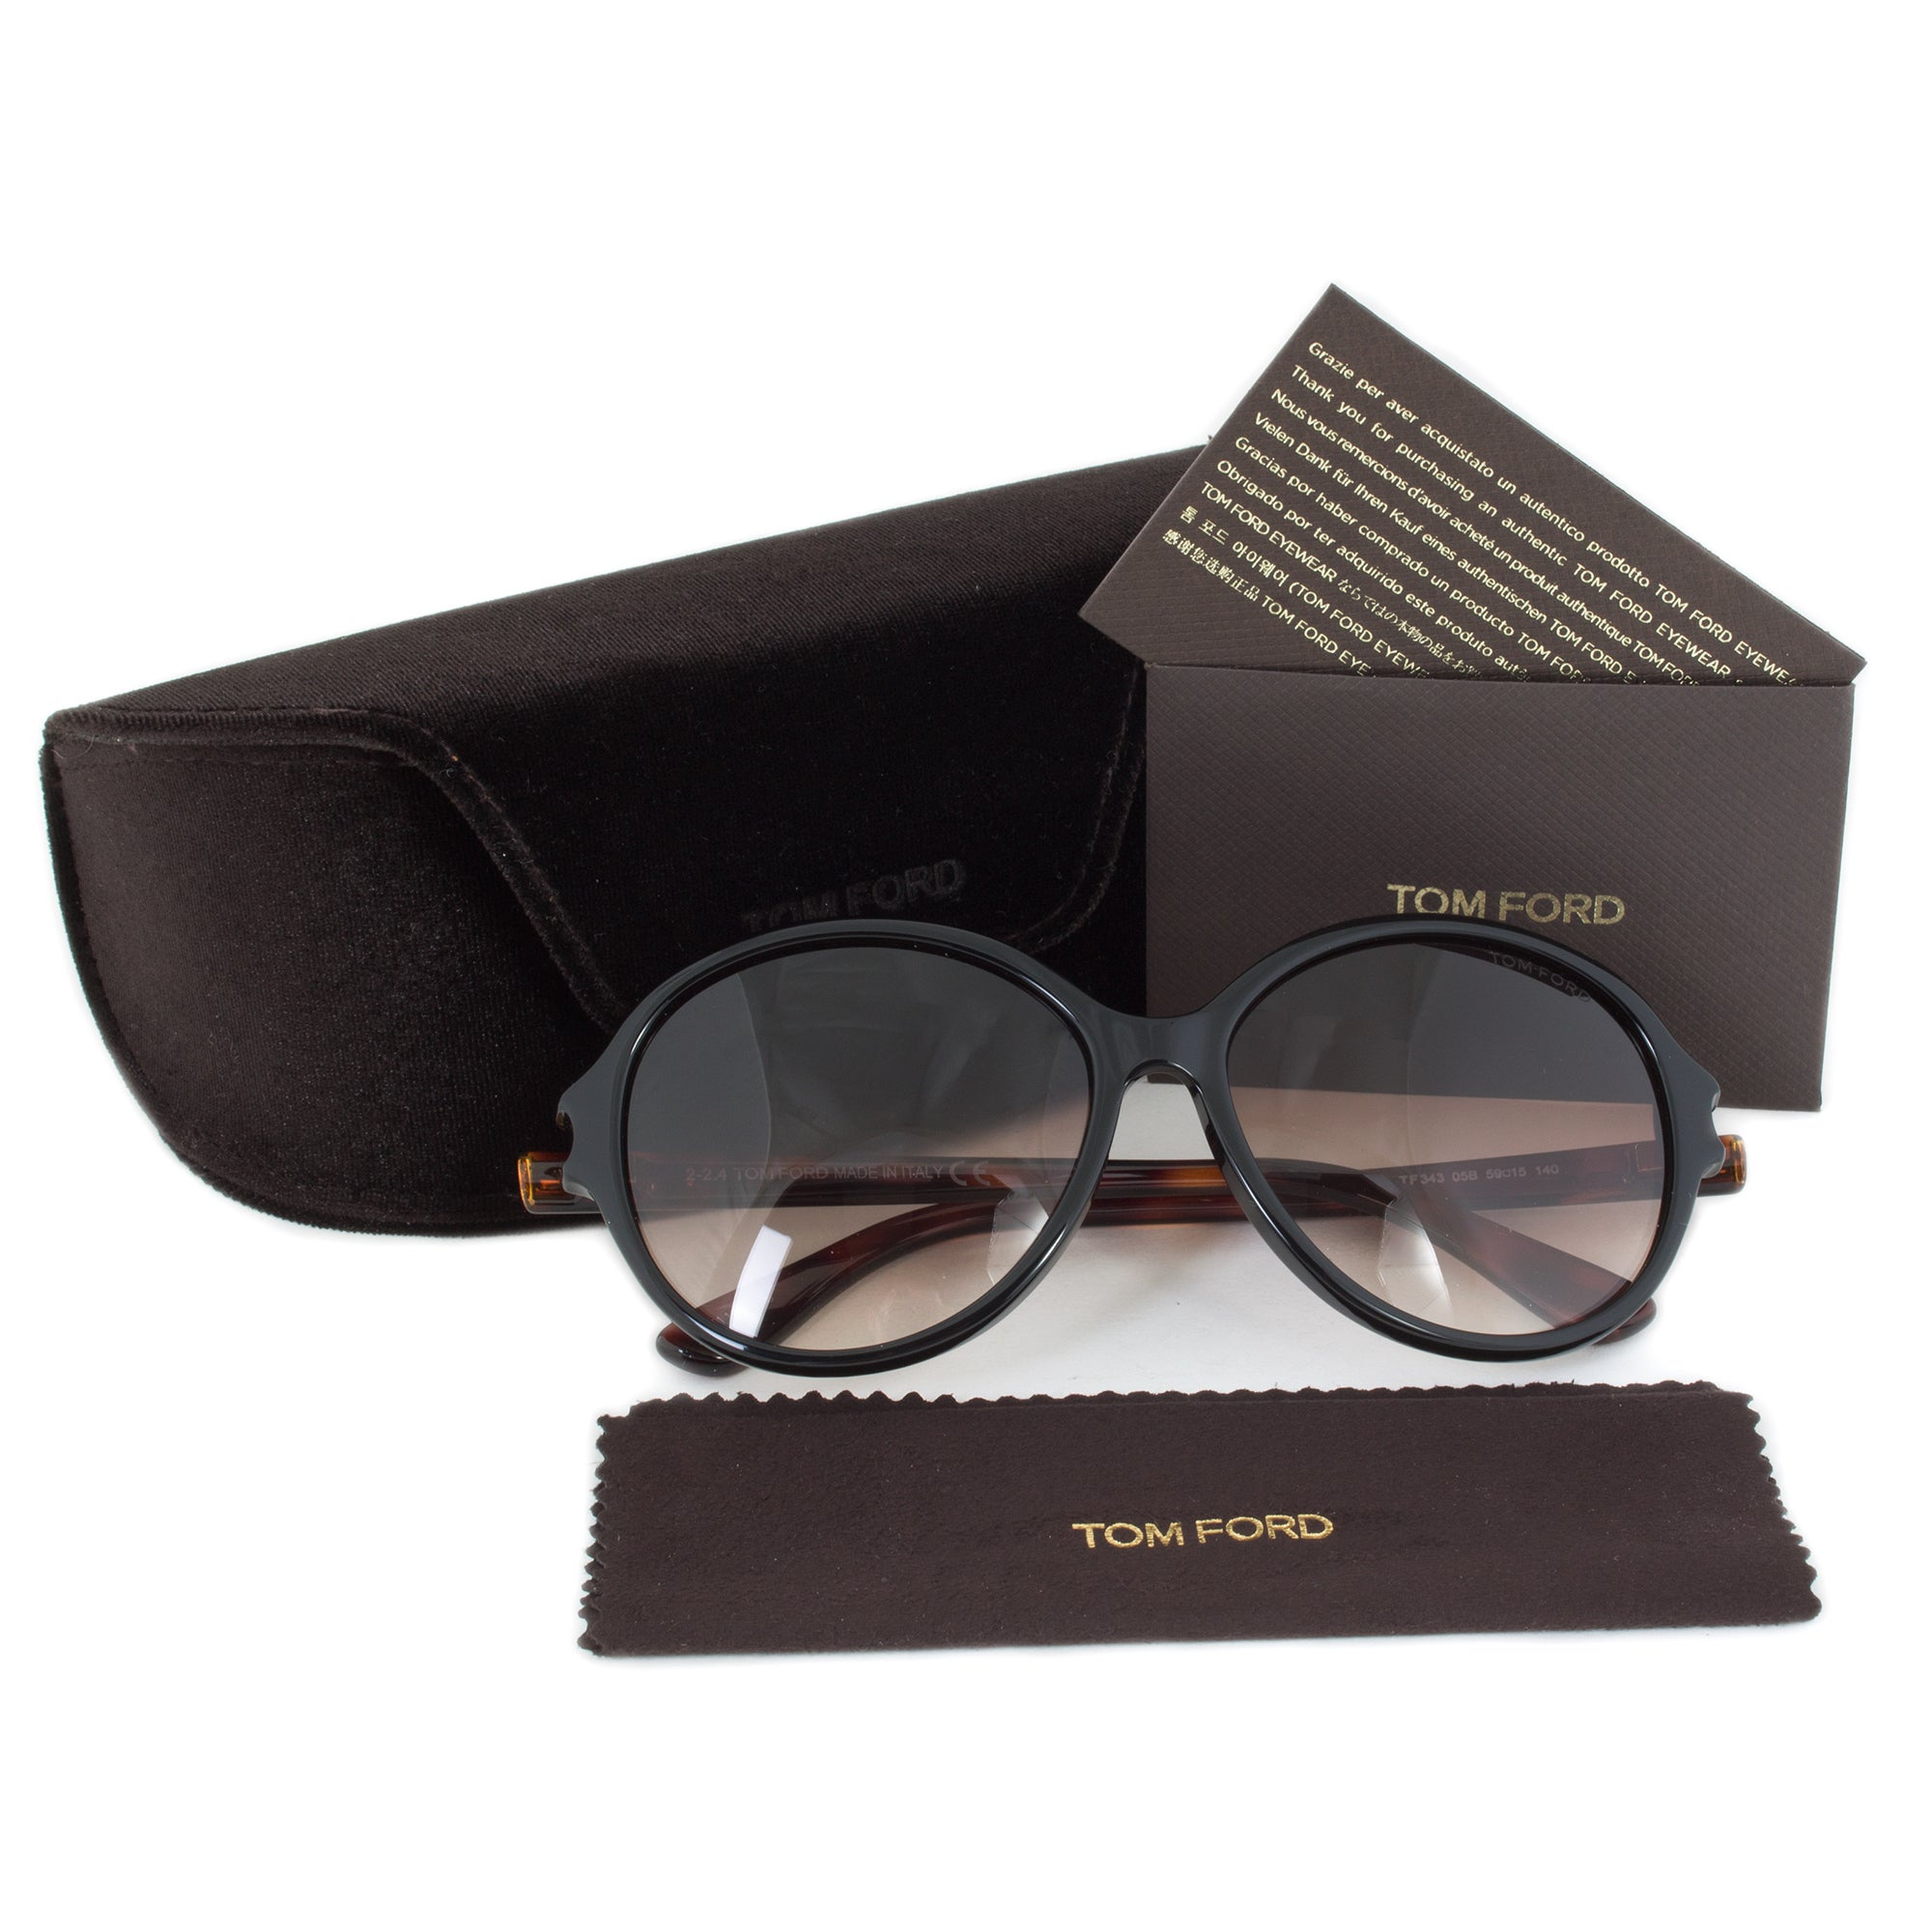 c3d945d06607 Shop Tom Ford Women s TF0343 Milena Round Sunglasses - Free Shipping Today  - Overstock - 9437168